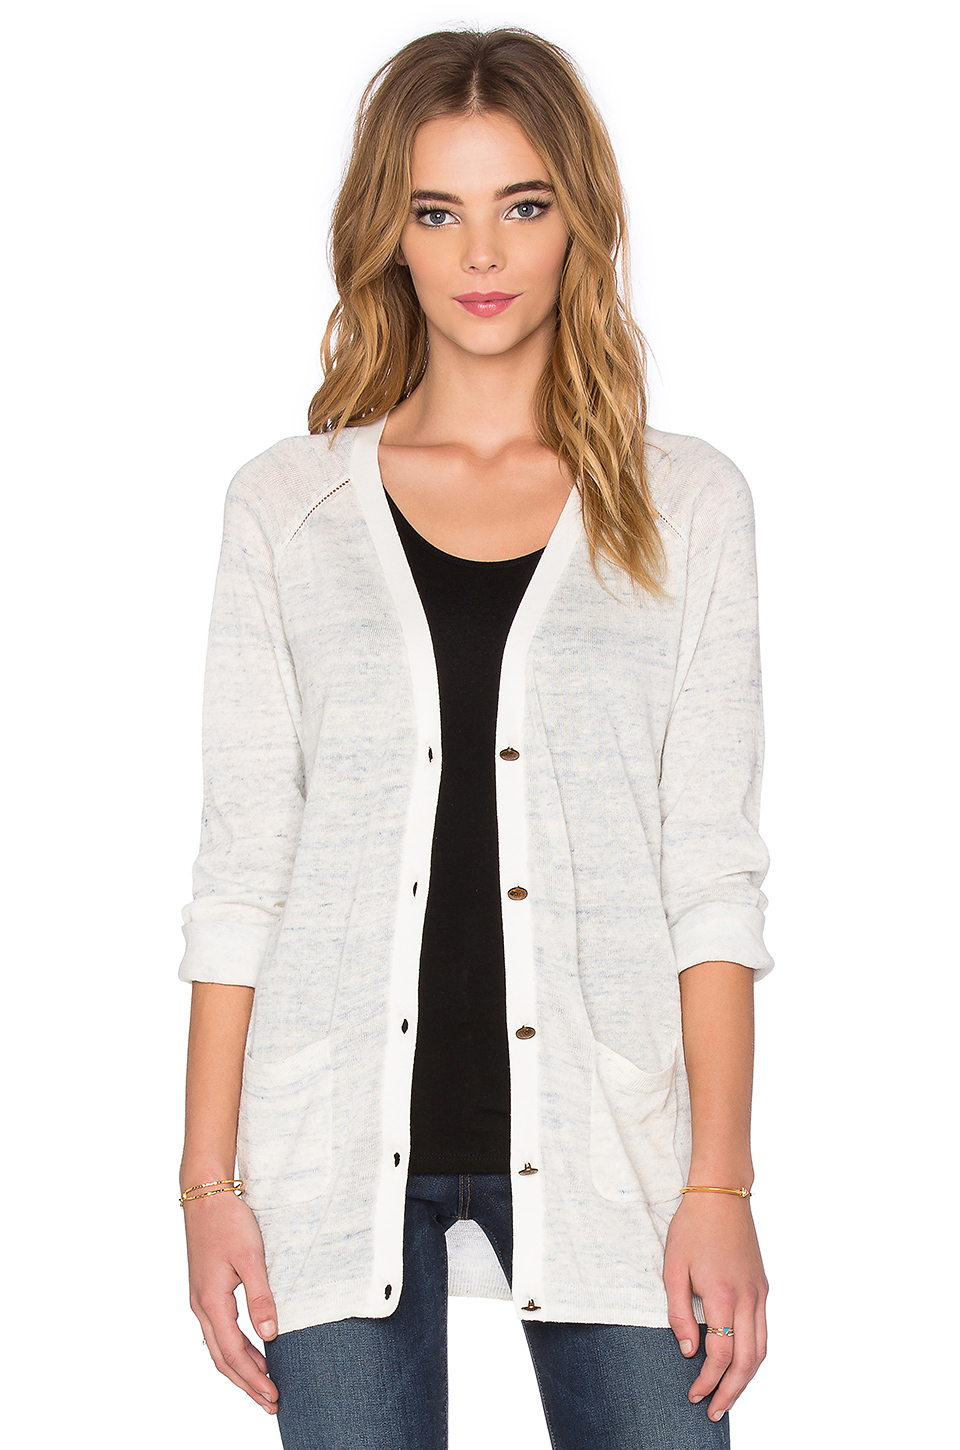 Cheap Plus Size Cocktail Dresses 2016 - Part 2